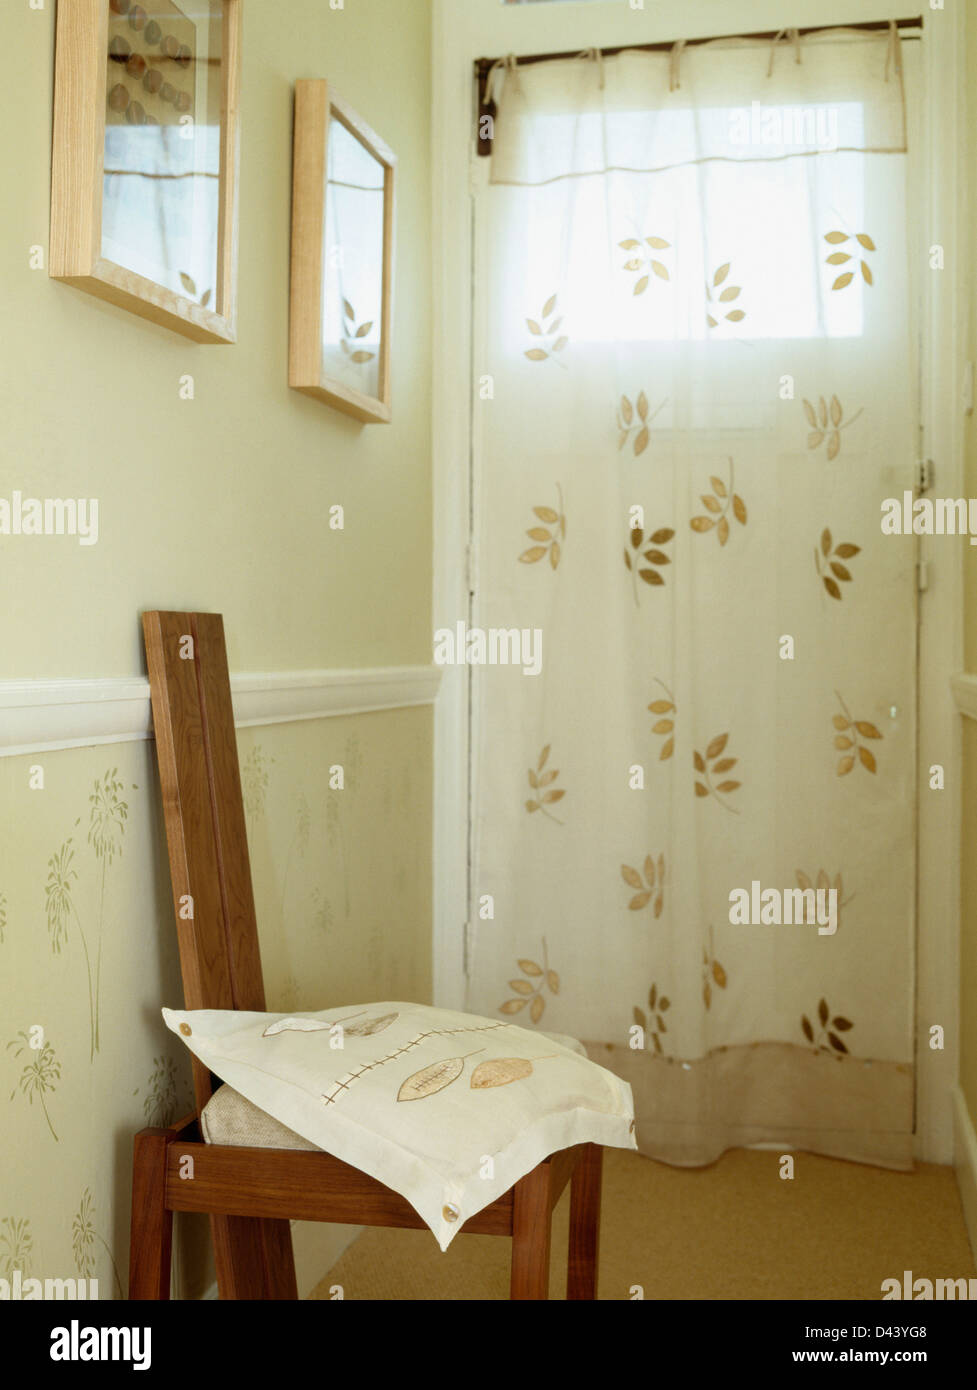 Appliqued Cream Voile Curtain On Front Door In Hall With Appliqued Cushion  On Wooden Chair Against Wall With Stenciled Dado